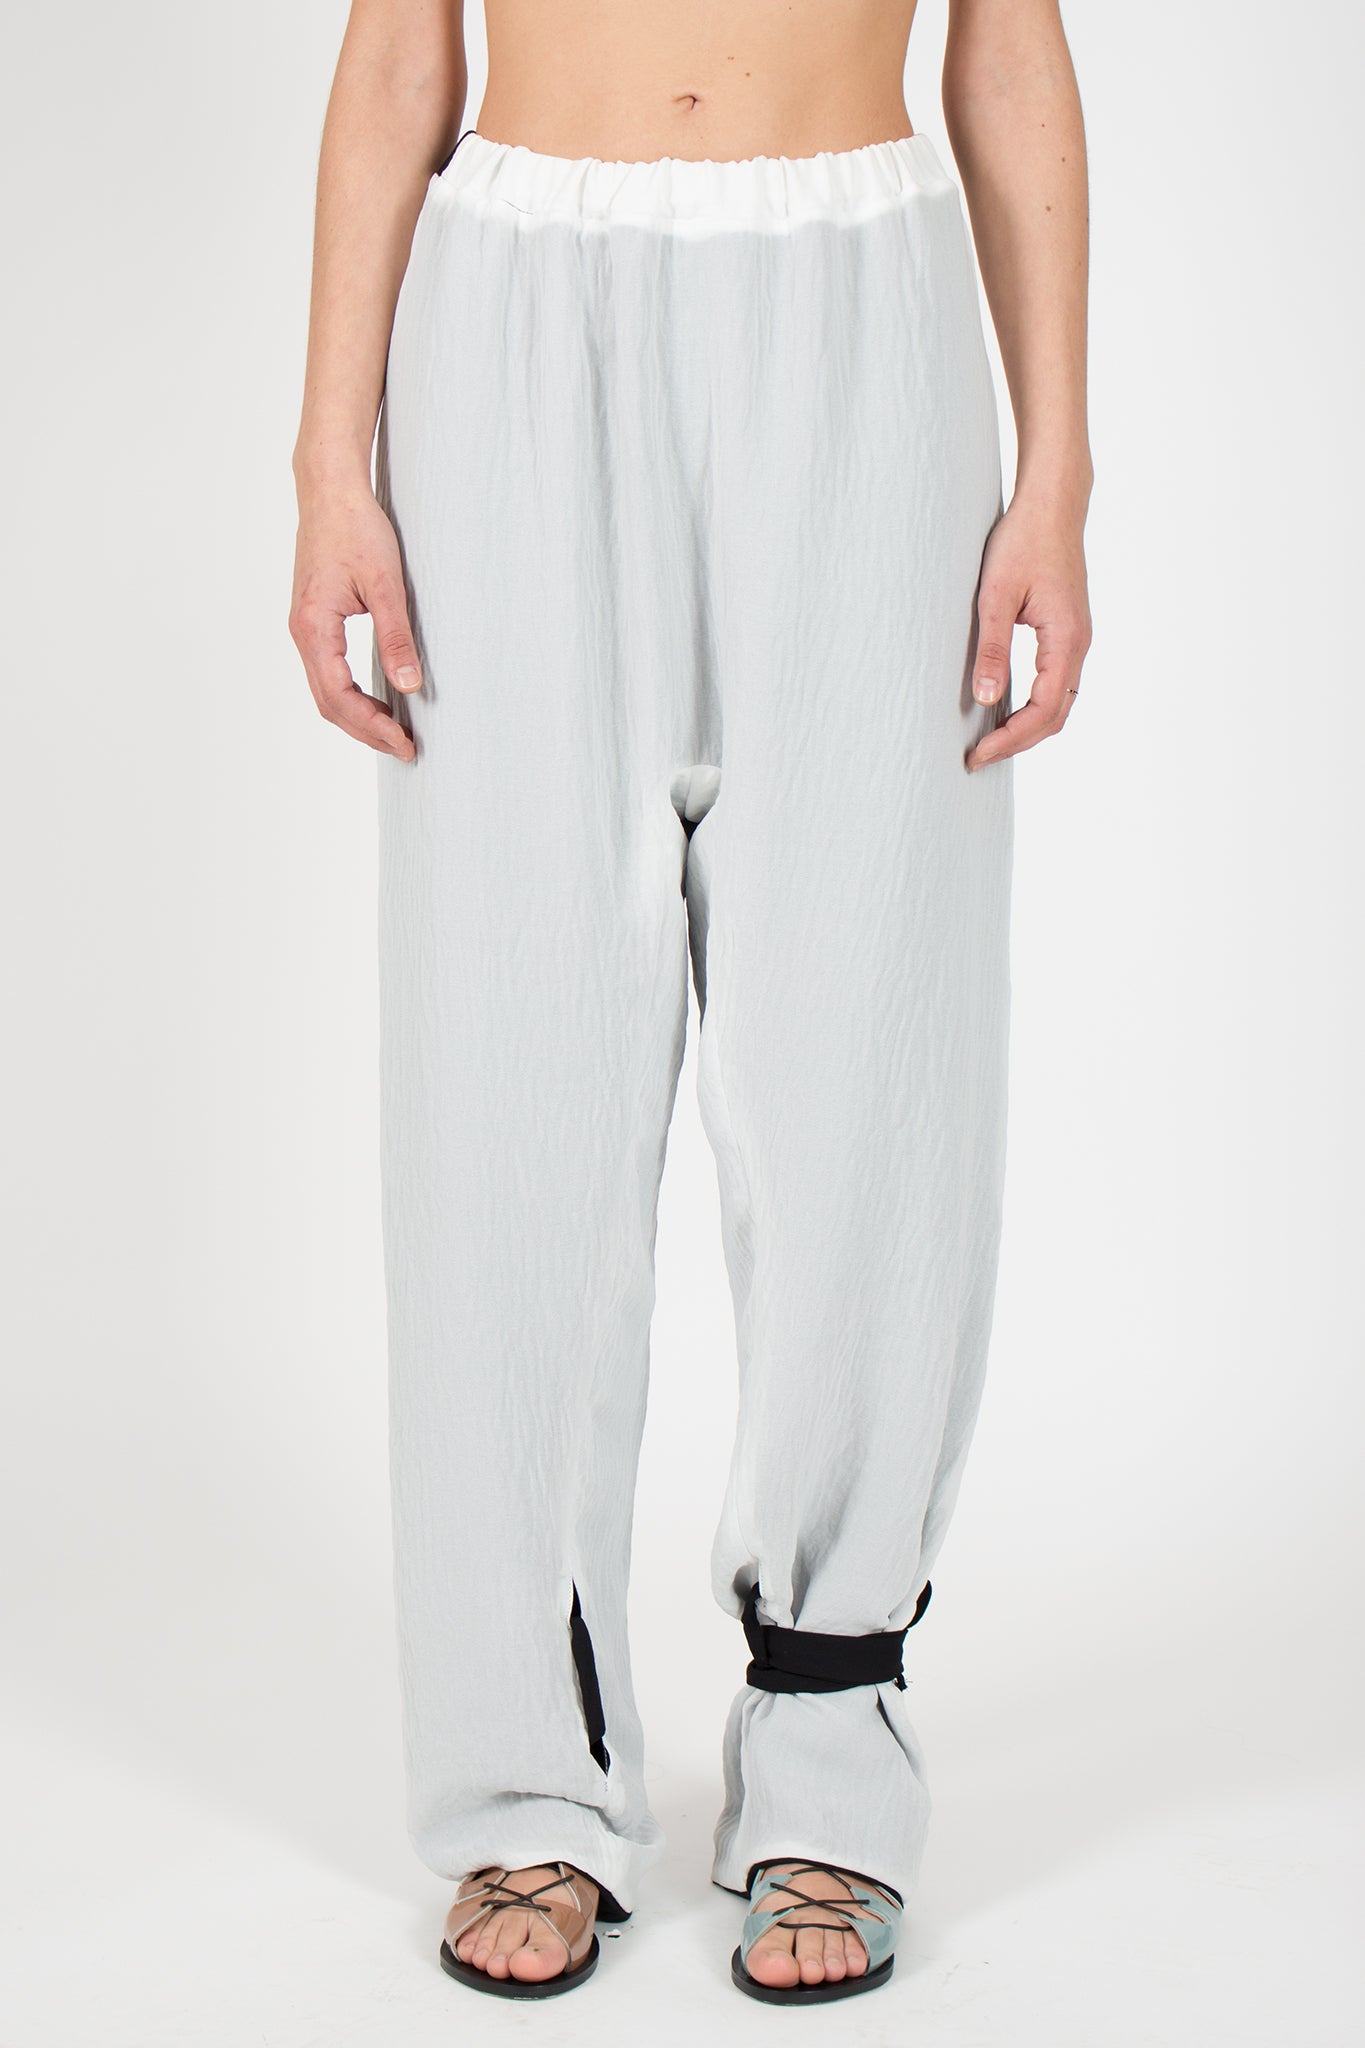 Shop CLON8 Relax Pull-On Double Face Pants